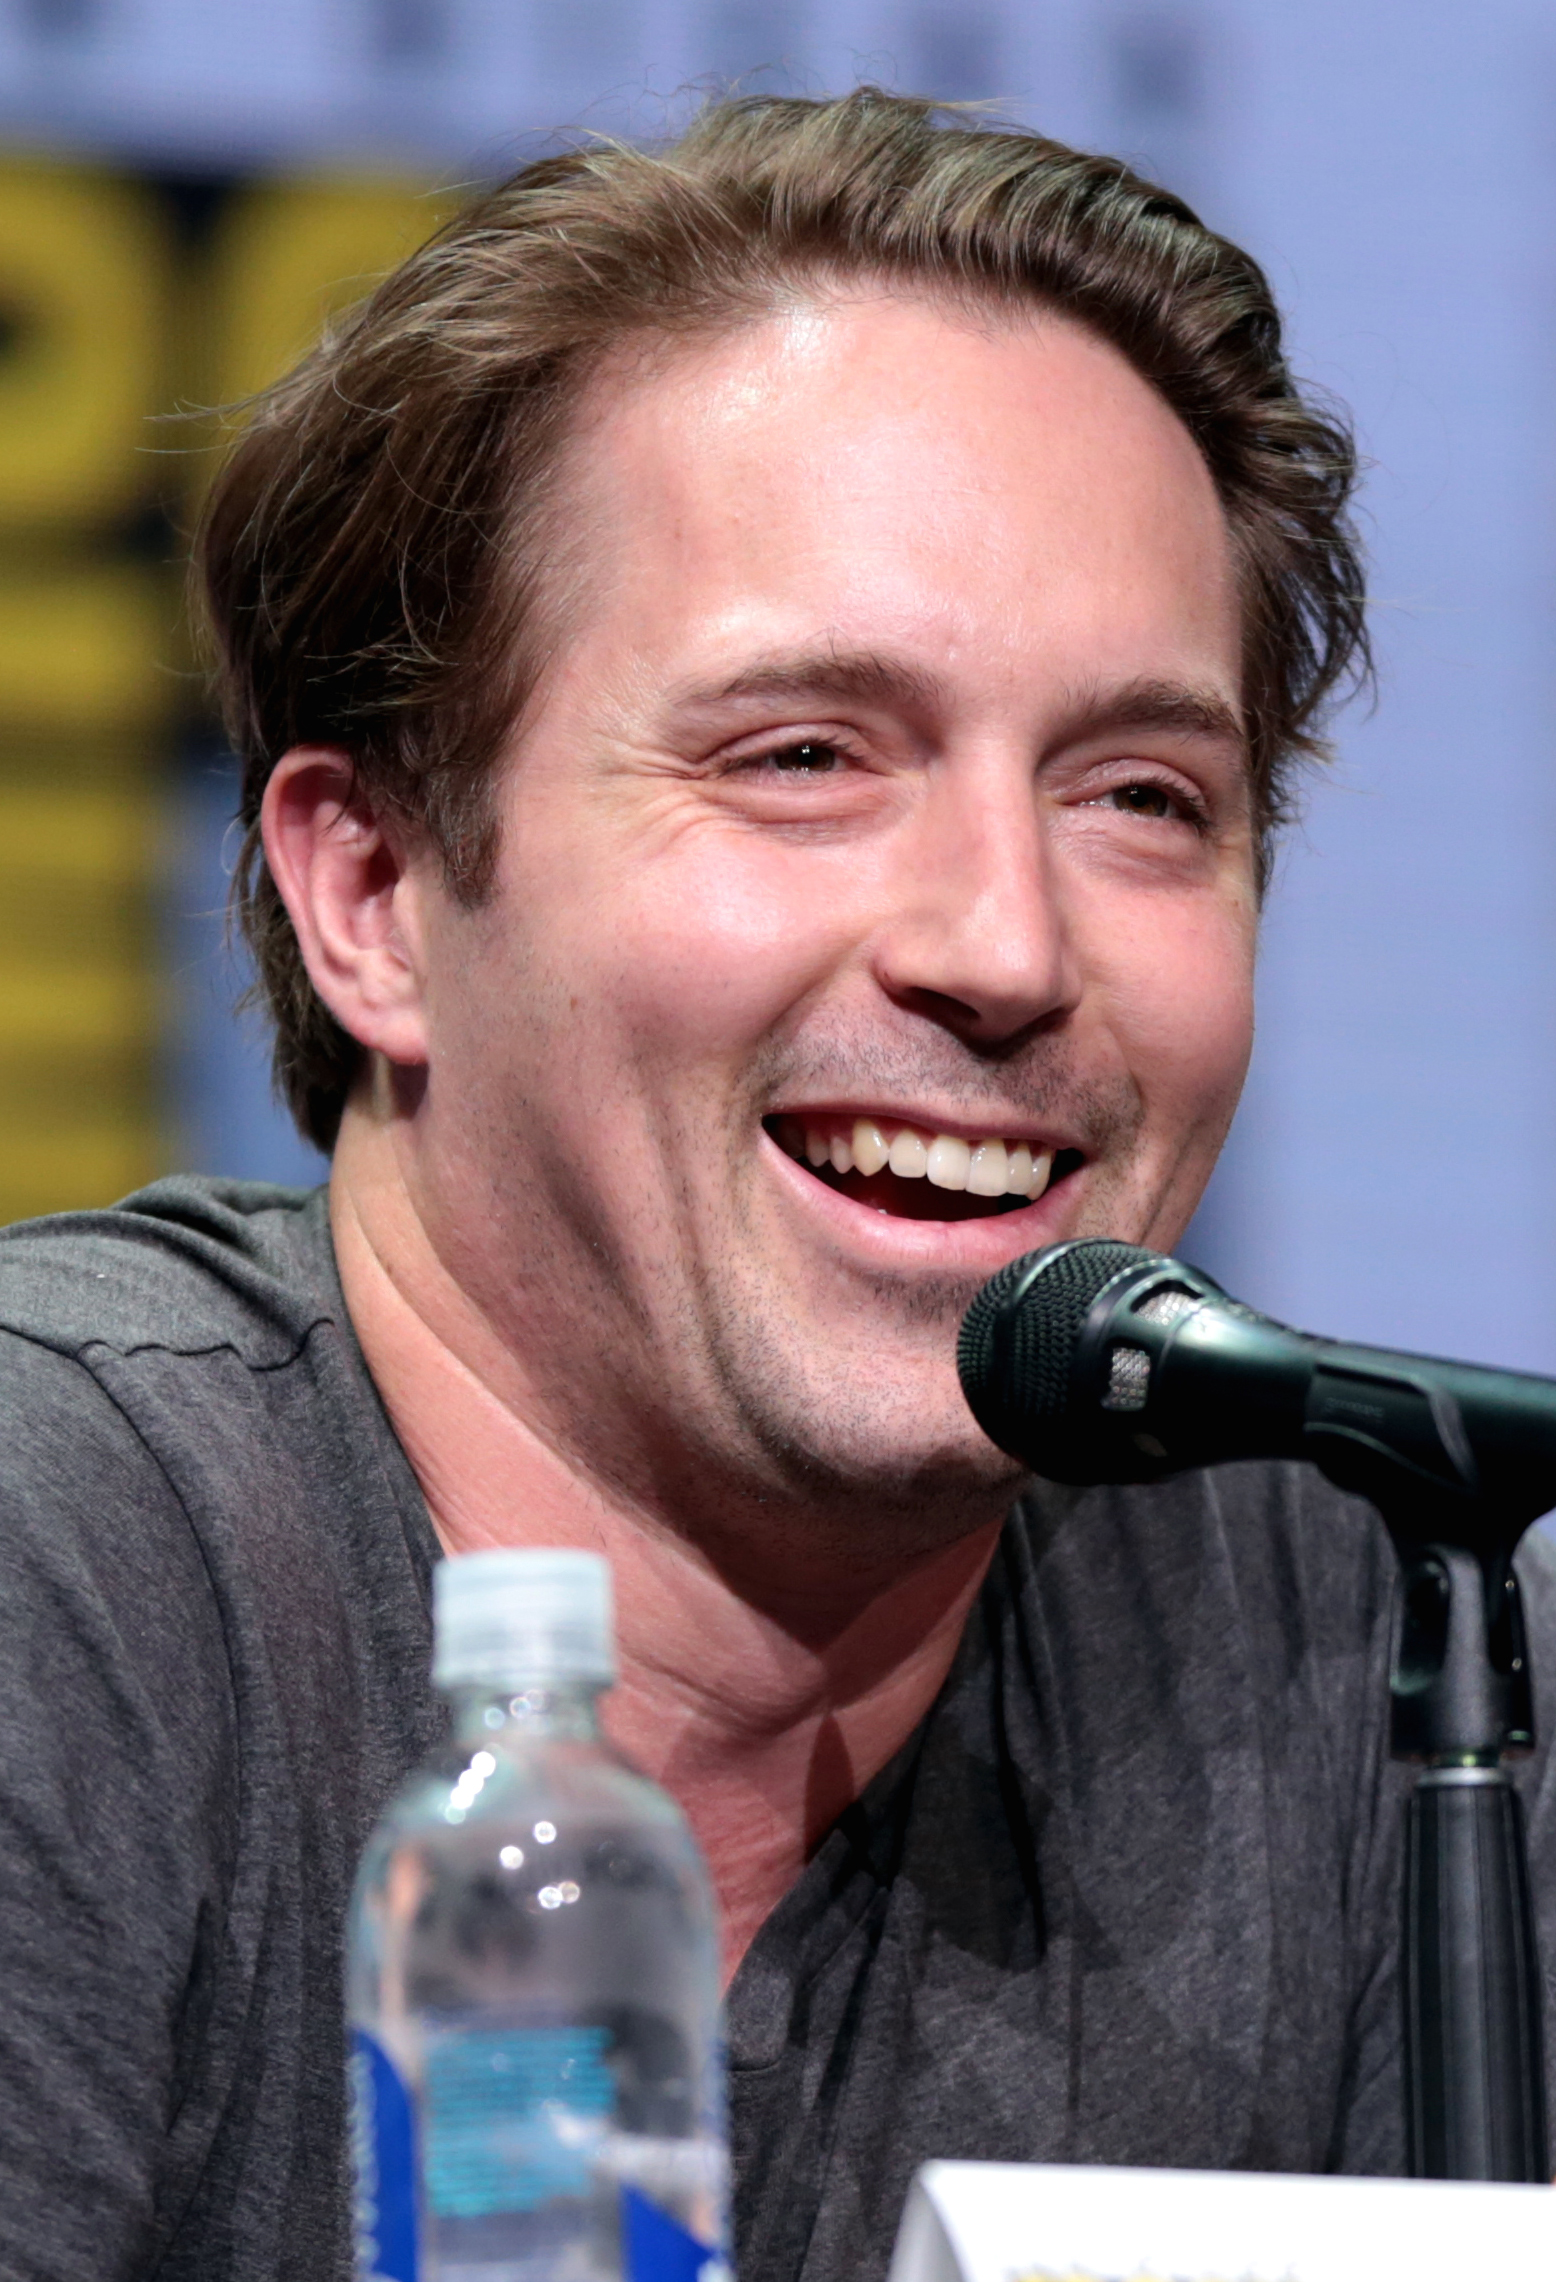 The 33-year old son of father  Andy Bennett and mother Sarah Bennett Beck Bennett in 2018 photo. Beck Bennett earned a  million dollar salary - leaving the net worth at 1 million in 2018